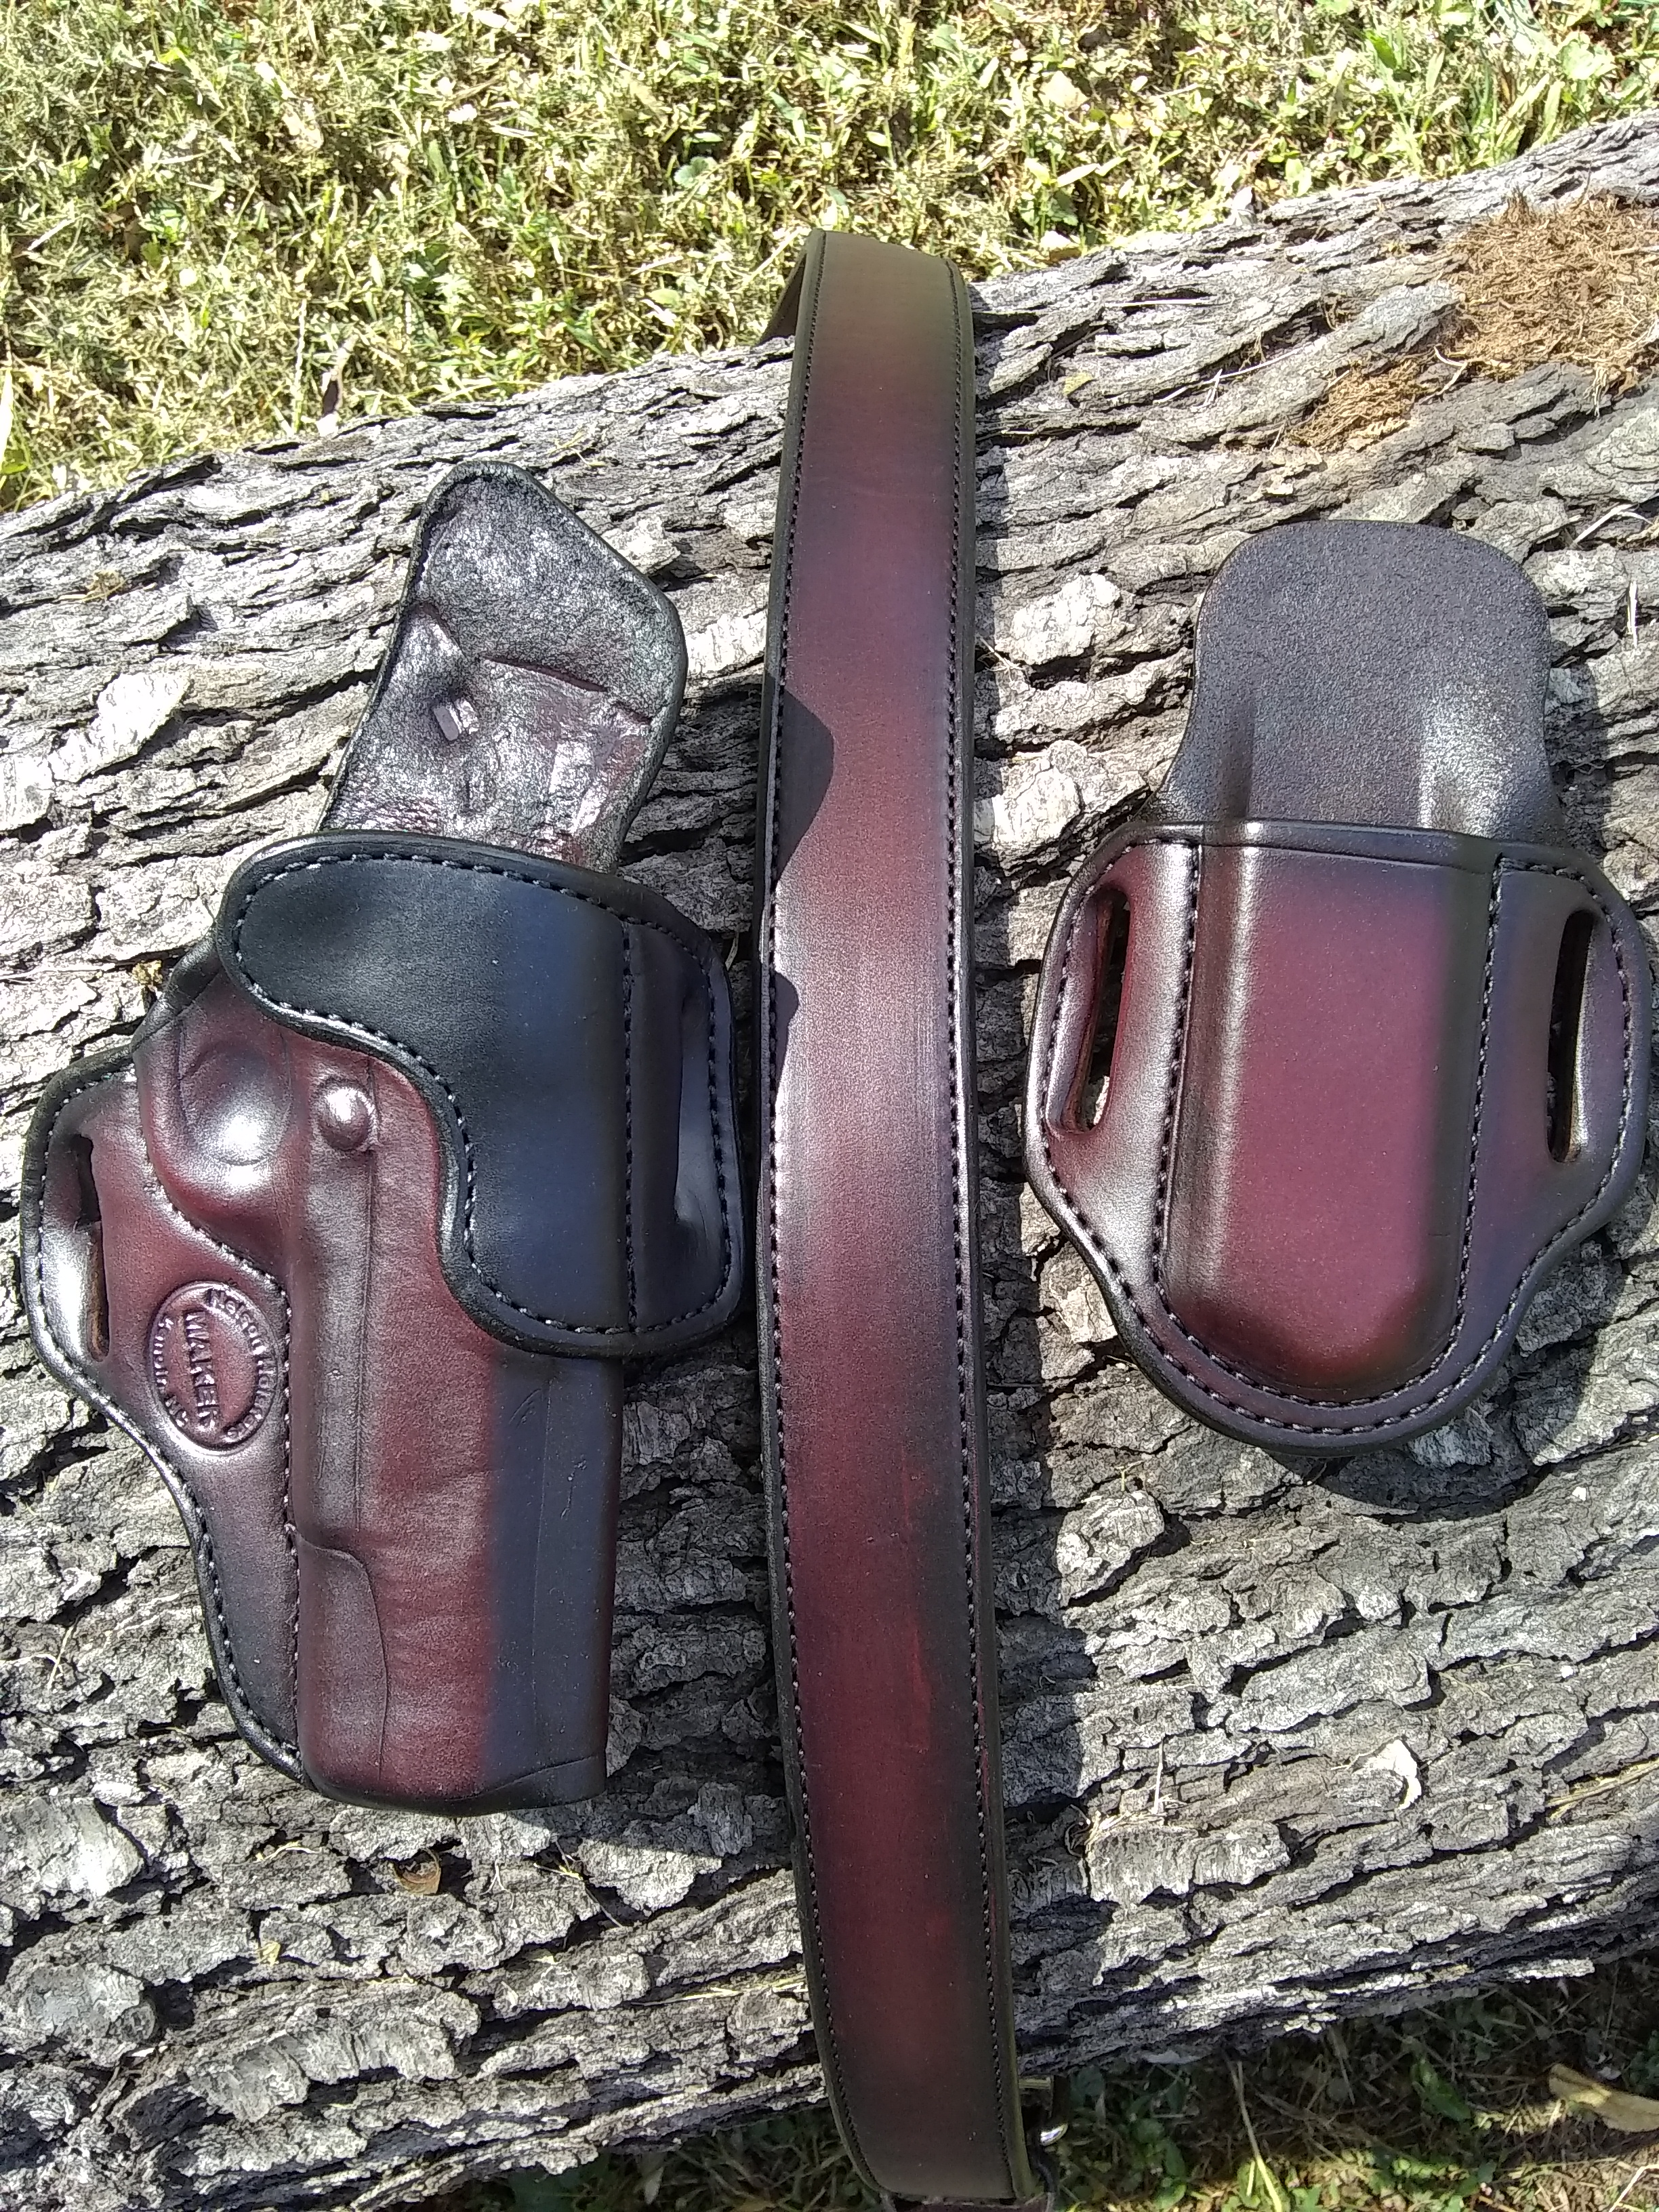 Family pictures of holsters.-img_20191010_131550261.jpg